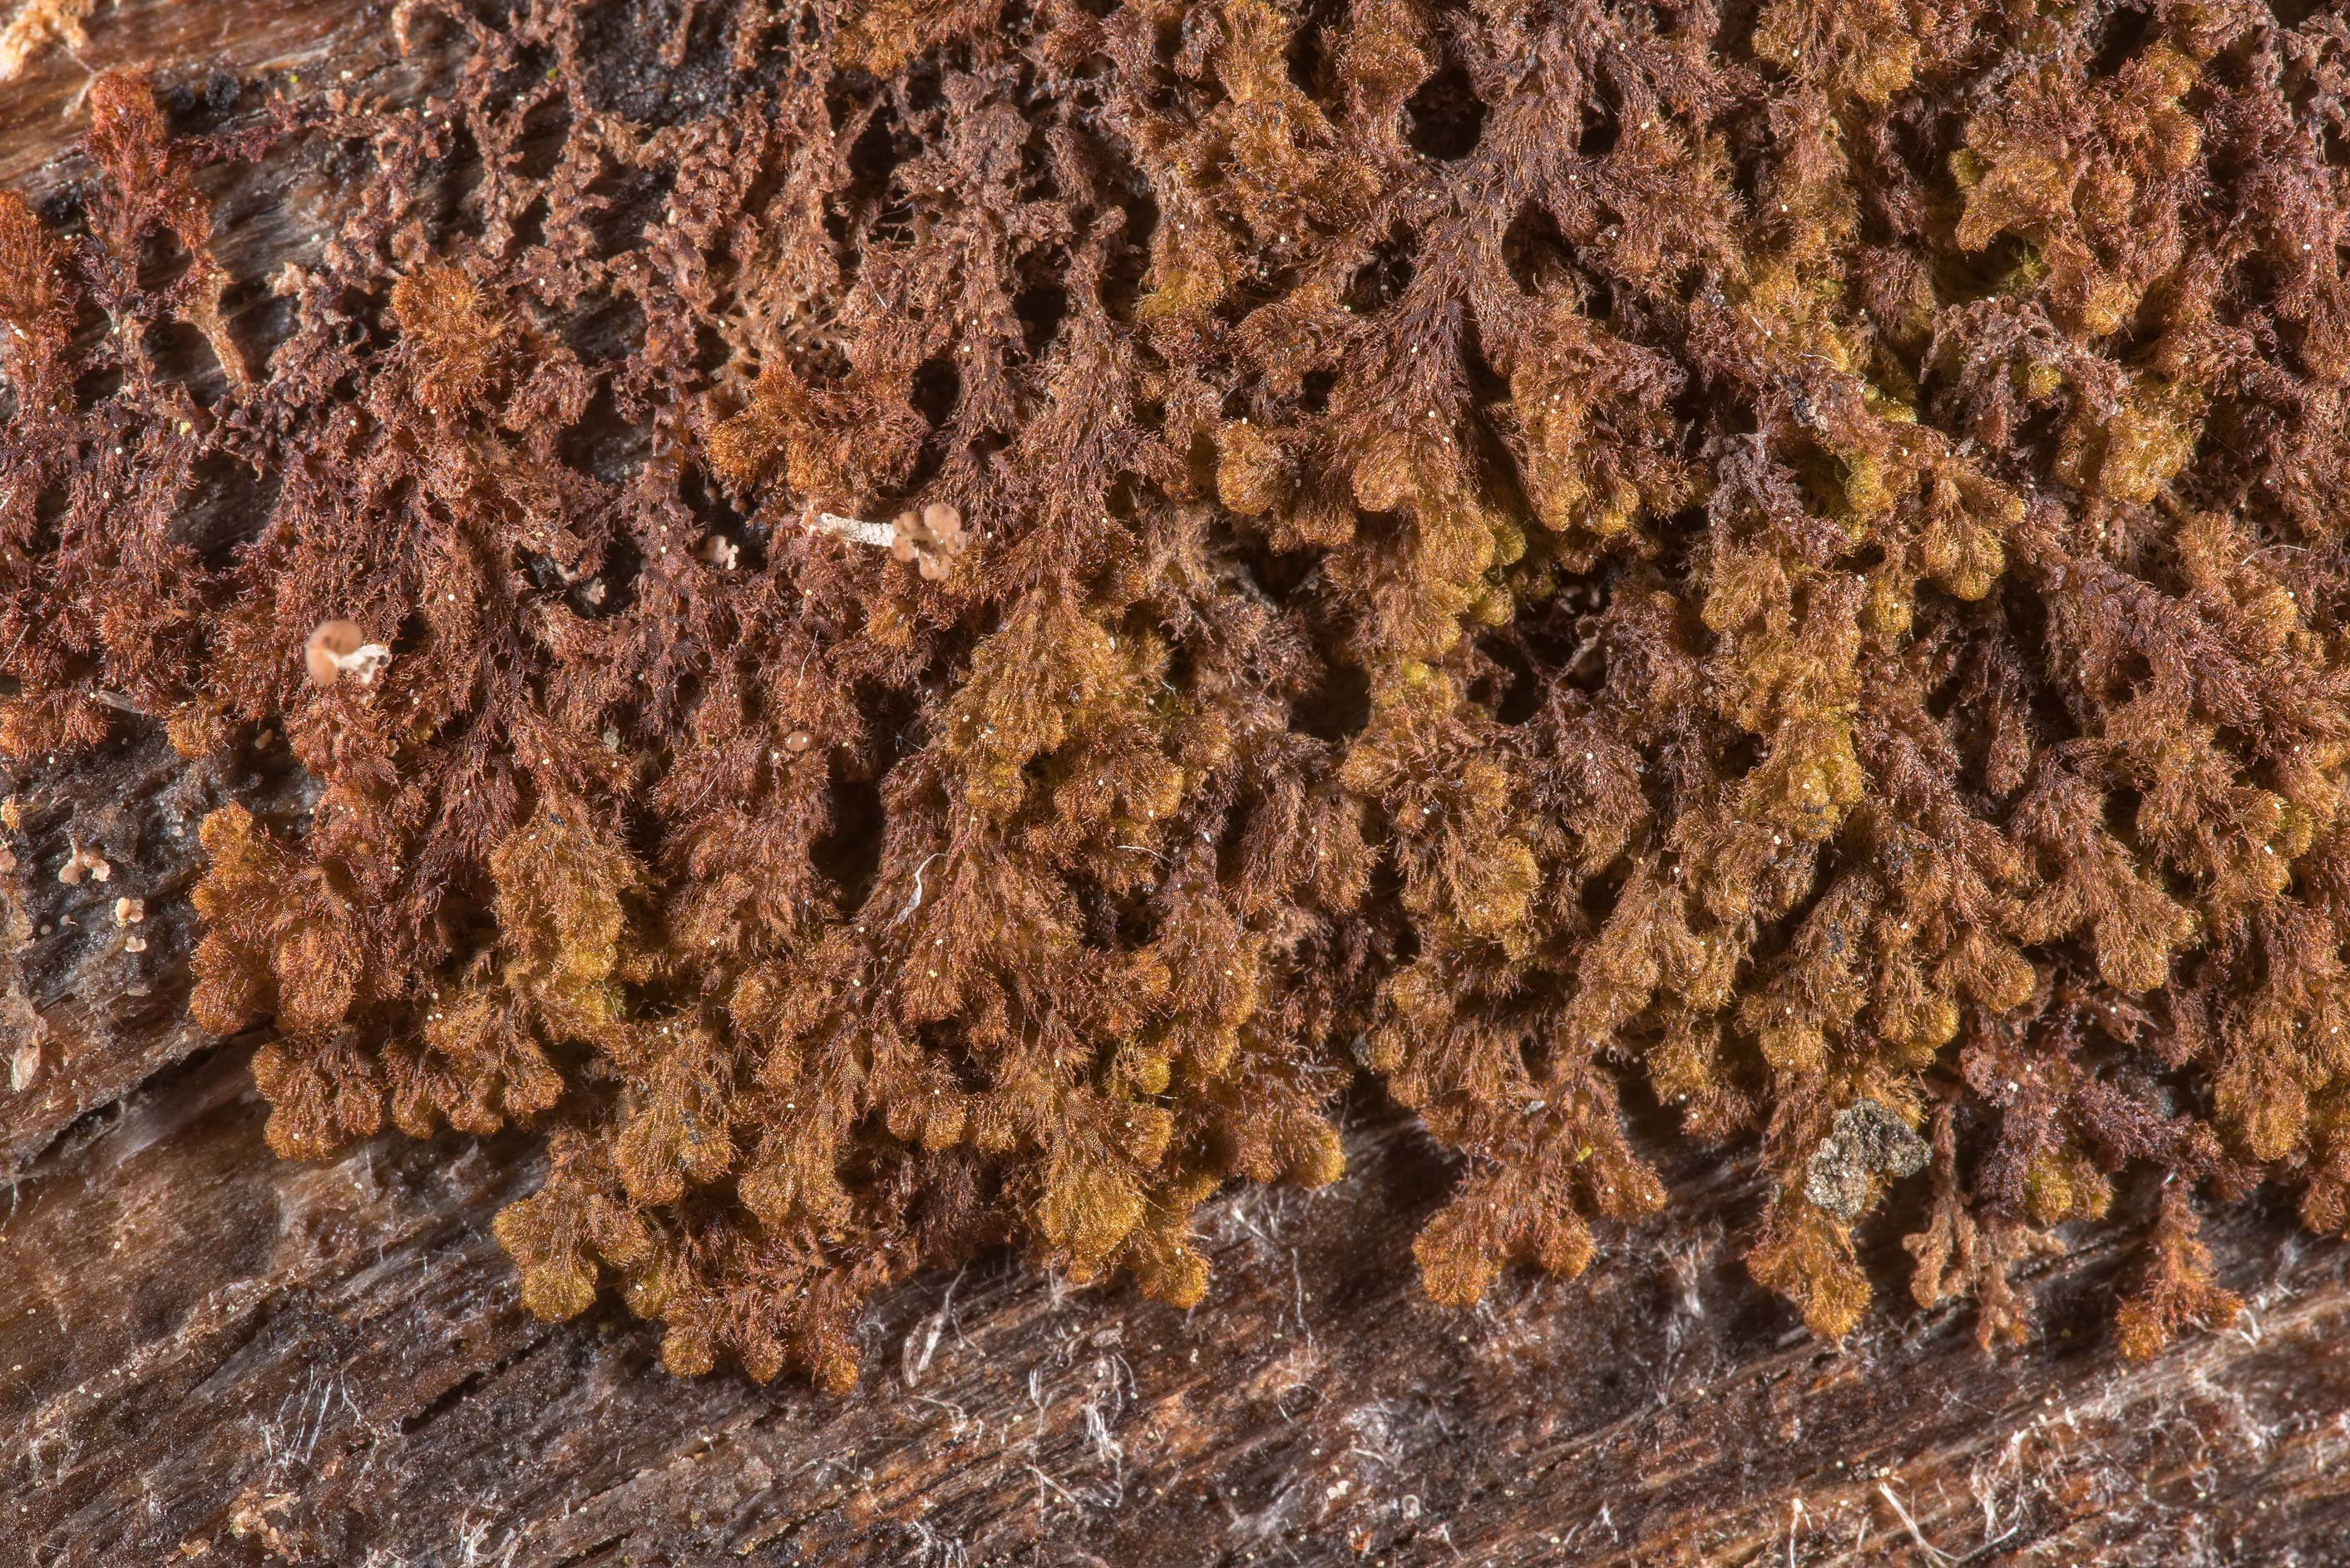 Brown liverwort on a rotting wood post near Orekhovo, north from St.Petersburg. Russia